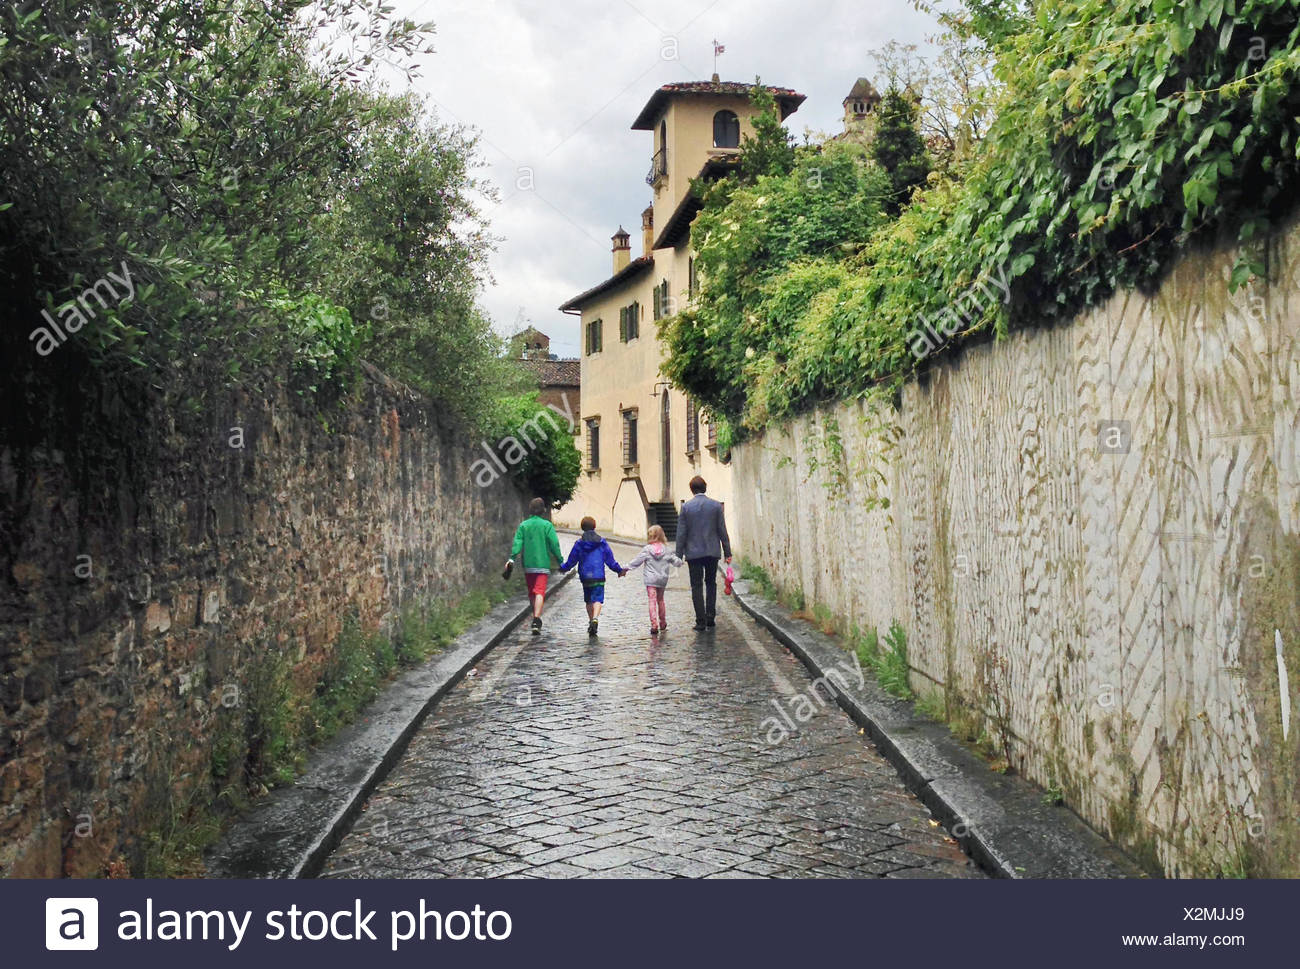 Italy, Tuscany, Florence, Father with three kids (10-11, 12-13) walking on rainy day - Stock Image